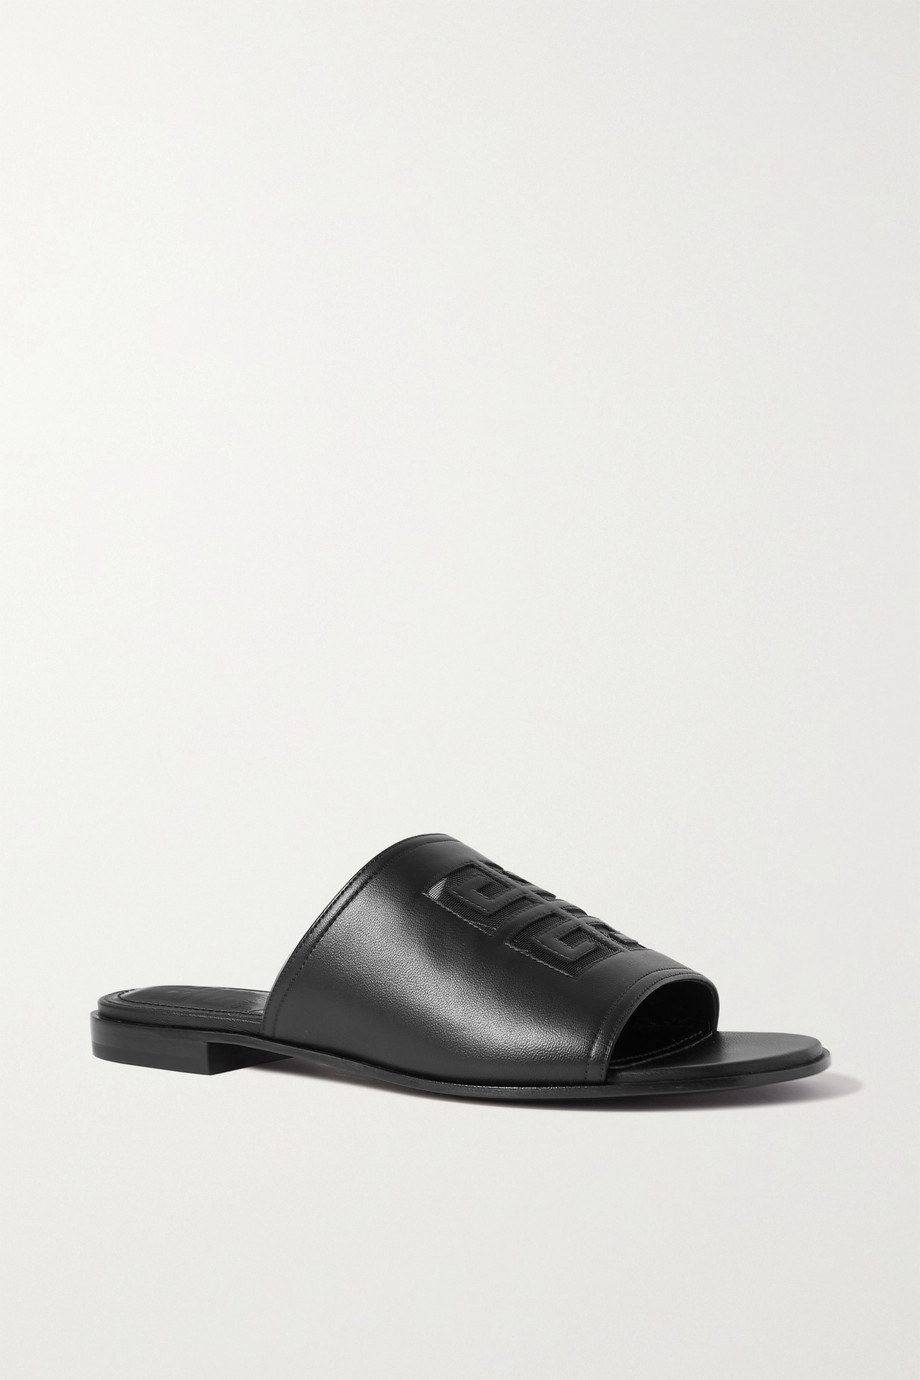 GIVENCHY Logo-embossed leather sandals